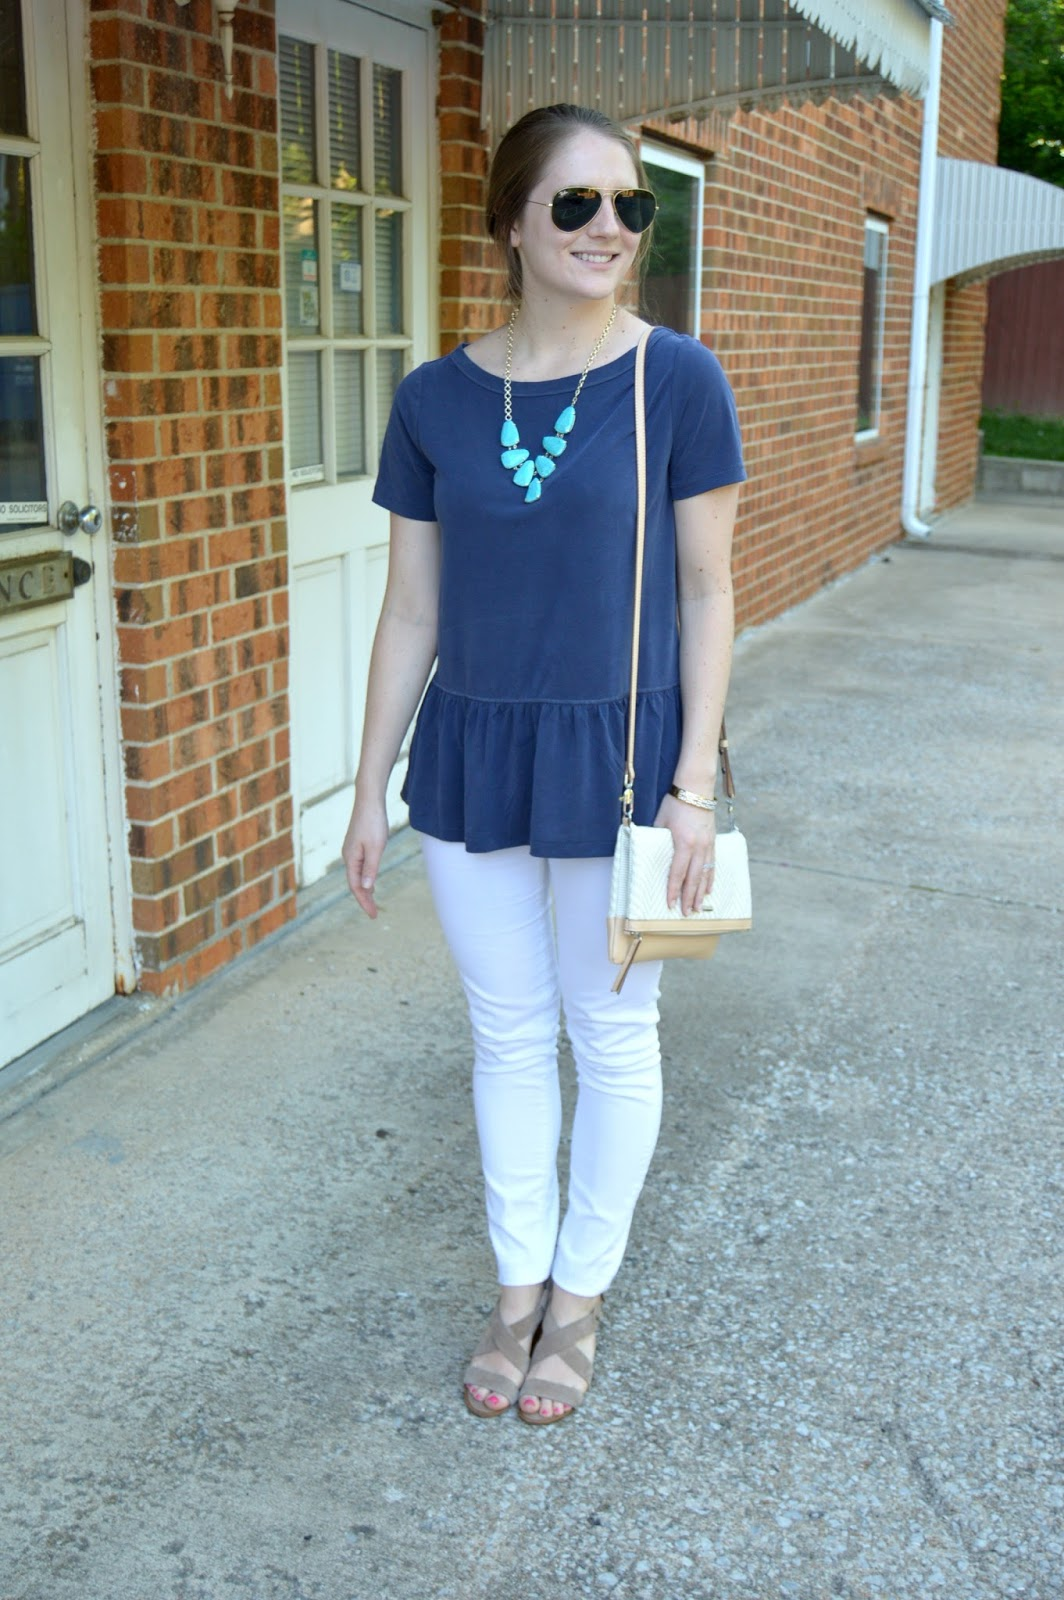 summer outfits with white jeans | what to wear this summer | peplum top | cute outfits for summer | summer outfit ideas | outfit ideas for summer